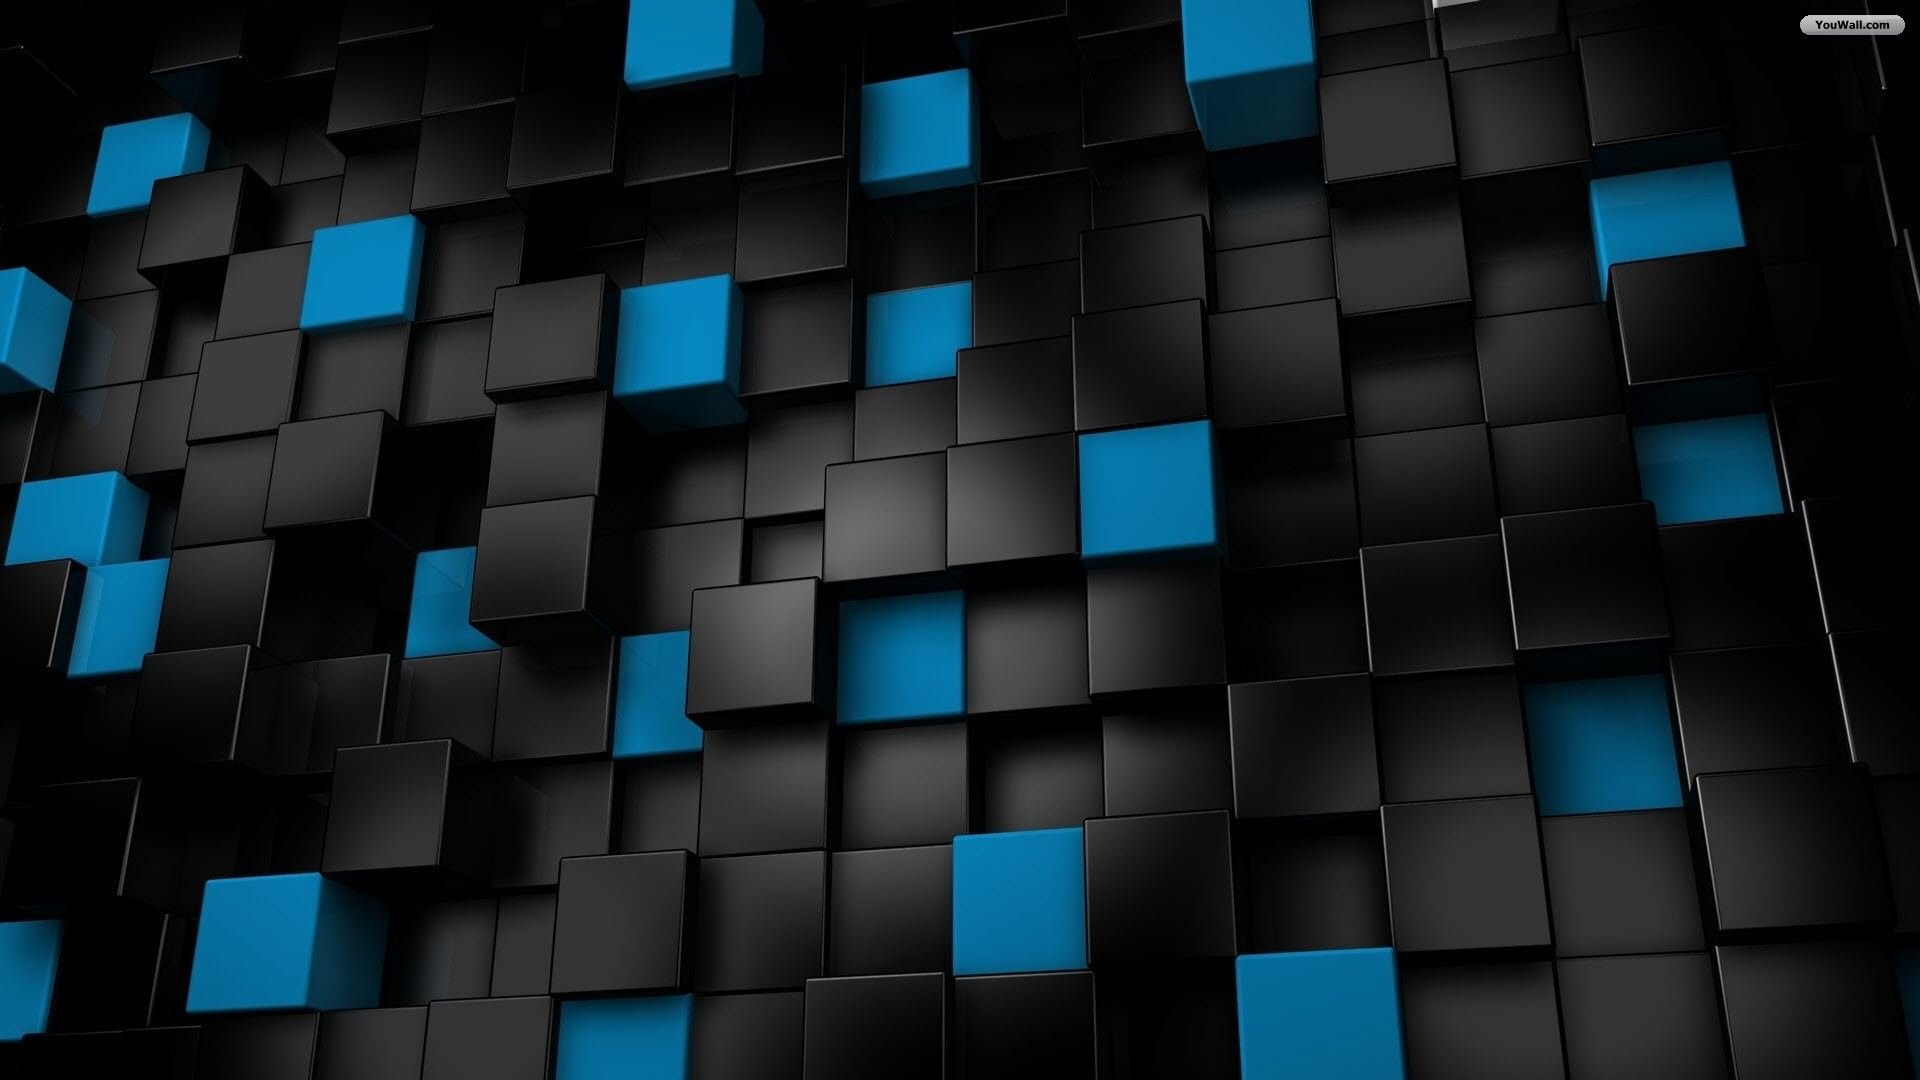 10 Best Black And Blue Wallpapers Full Hd 1920 1080 For Pc Background Black And Blue Wallpaper Cool Blue Wallpaper 3d Cube Wallpaper